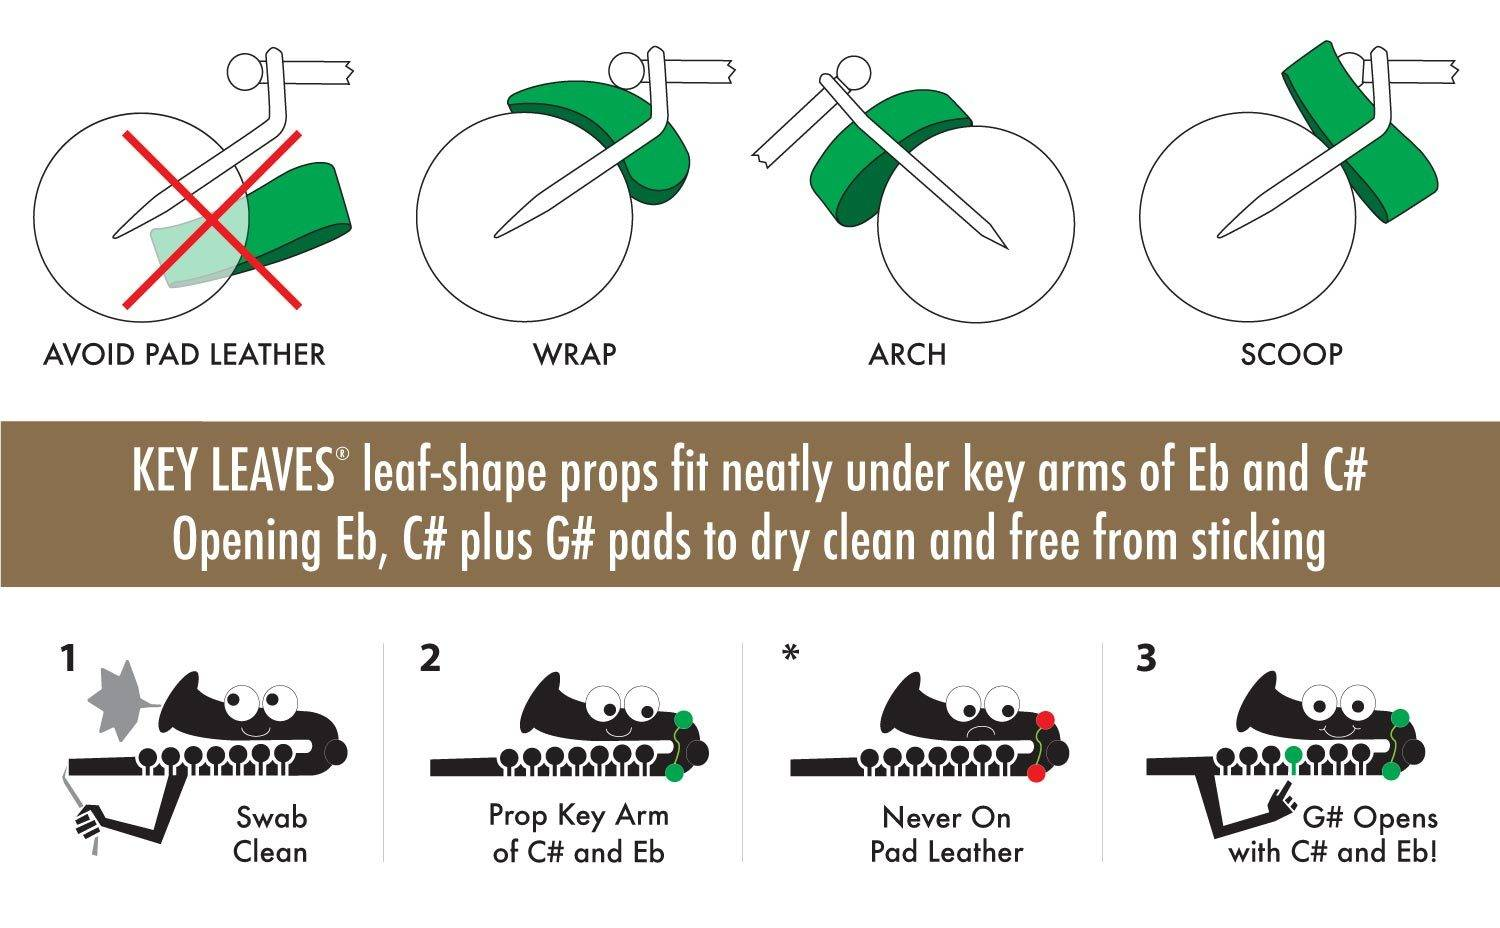 How to use Key Leaves sax key props on alto, tenor or bari saxophone to stop sticky G#, Eb and C# pads. The leaf-shape props fit neatly under key arms of Eb and C# opening G#, Eb and C# to dry clean and no sticking pads.